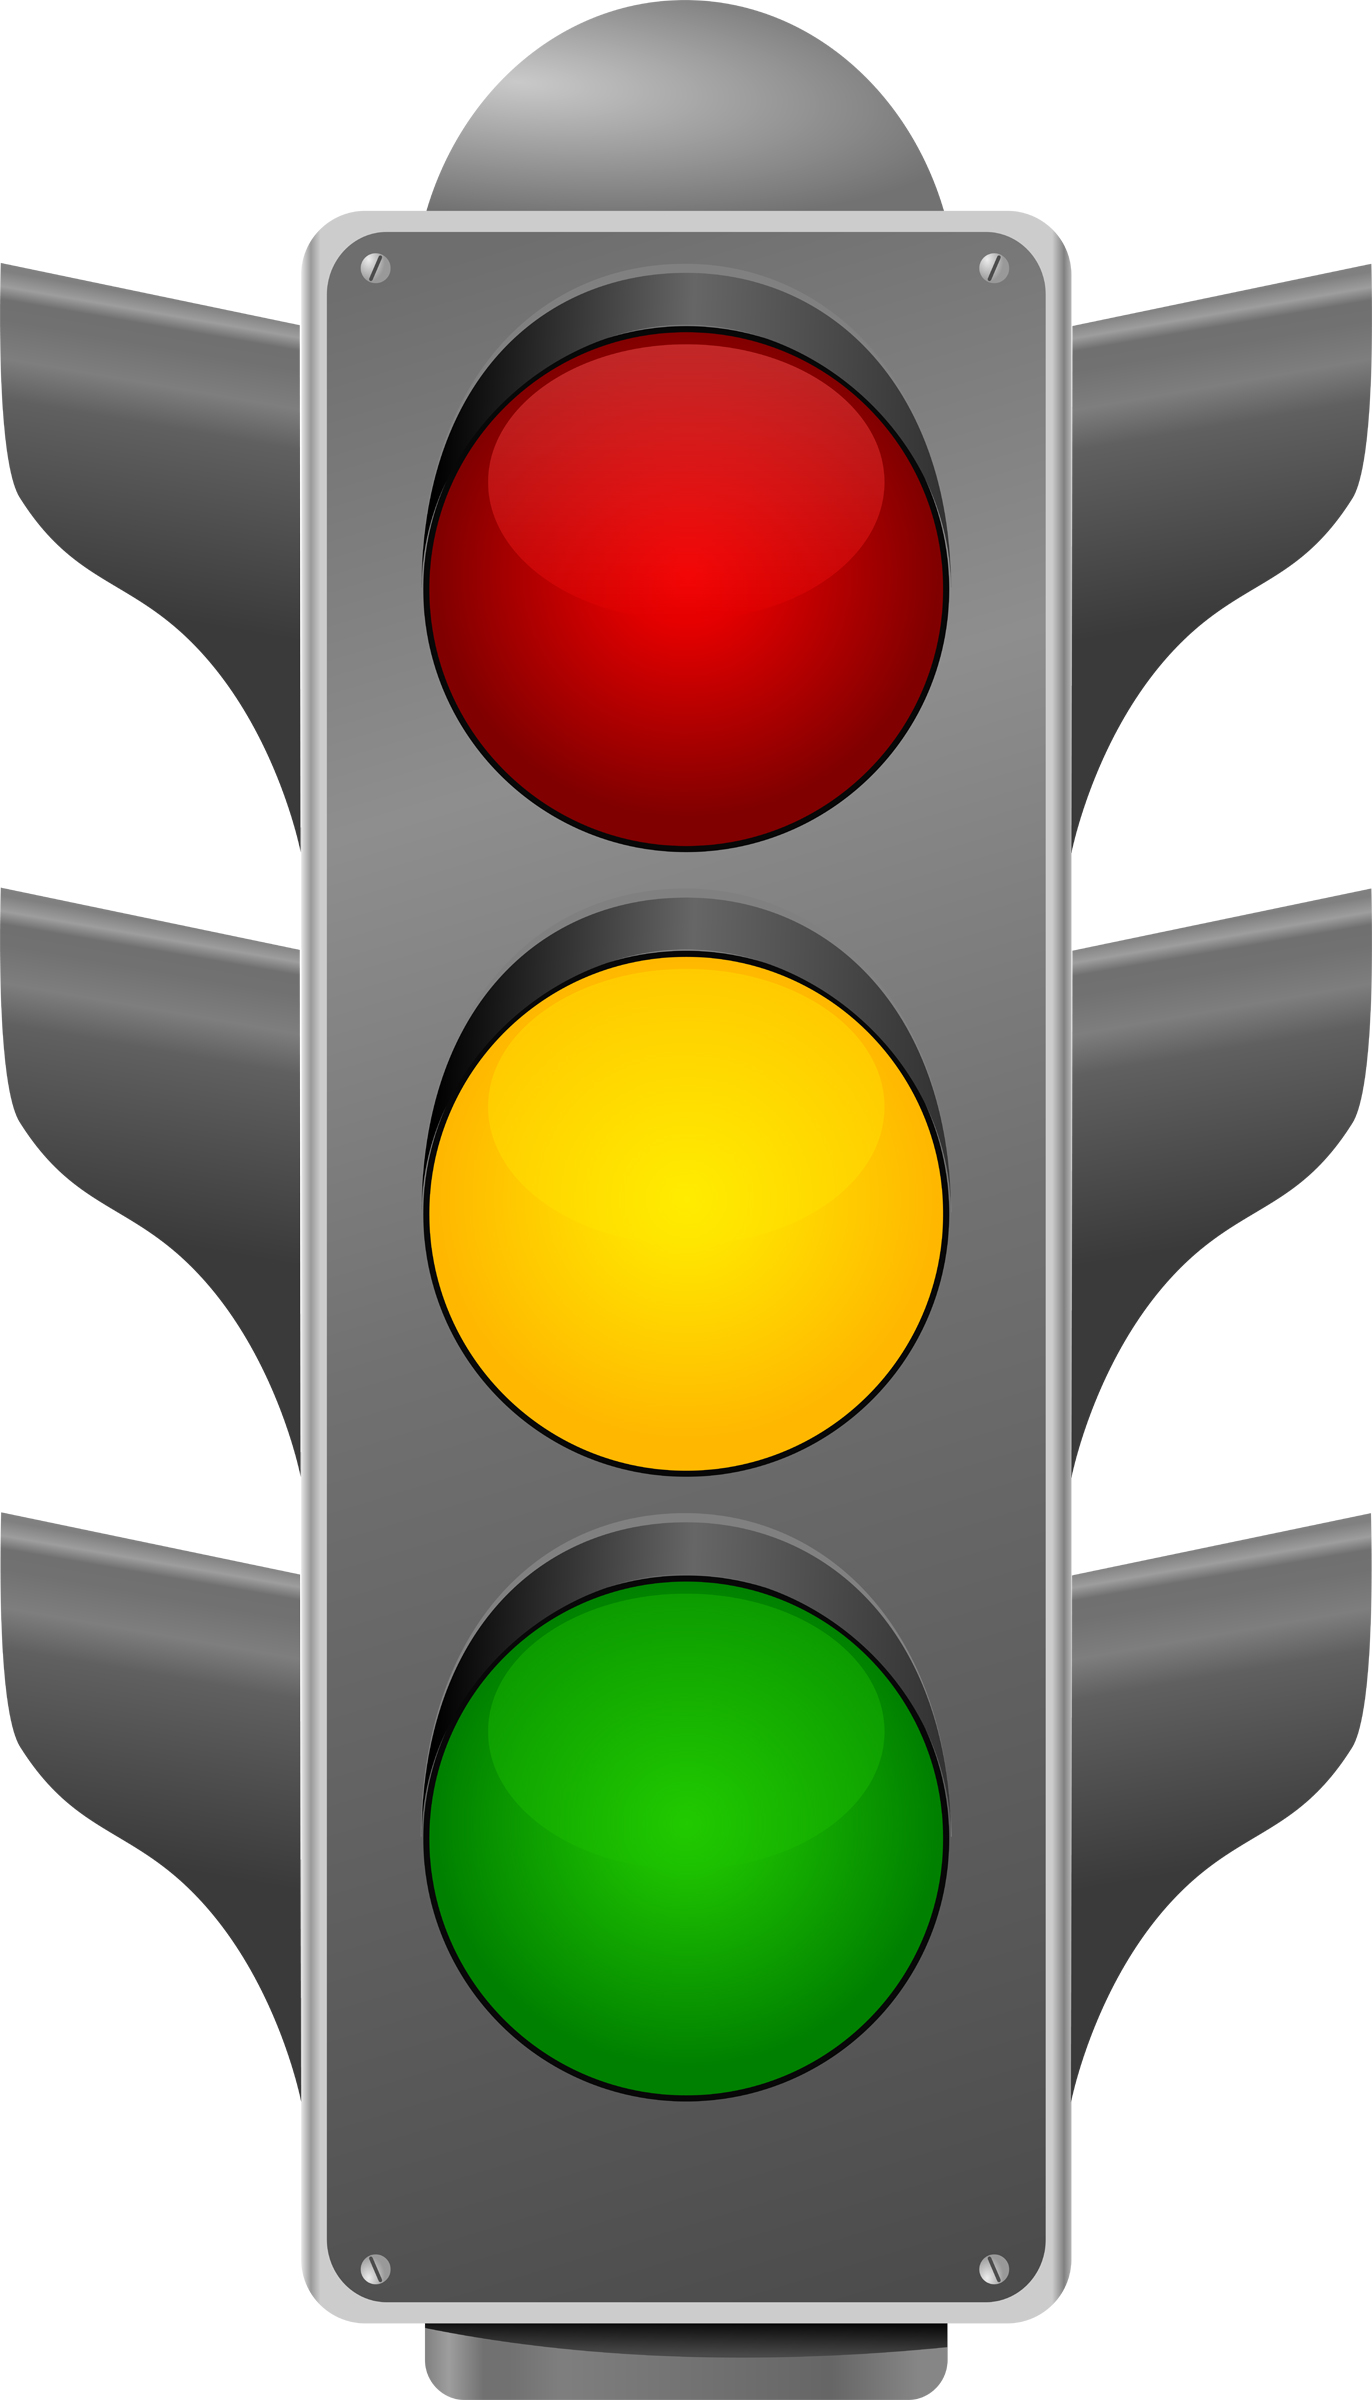 Free Images Of Traffic Lights, Download Free Clip Art, Free.